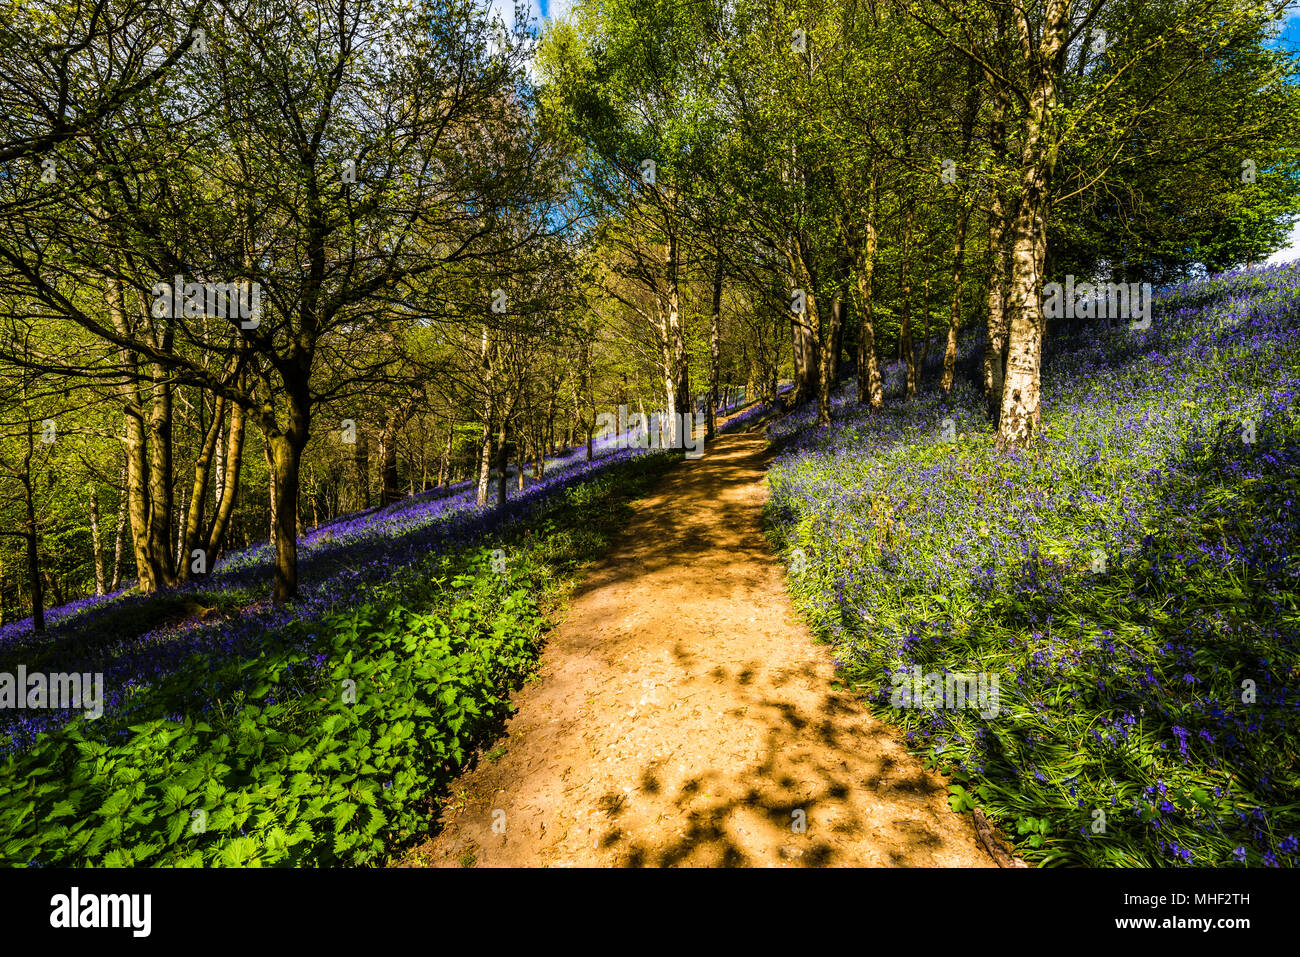 Pathway through a carpet of woodland Bluebells in the spring sunshine, Emmetts Garden, Kent, UK - Stock Image